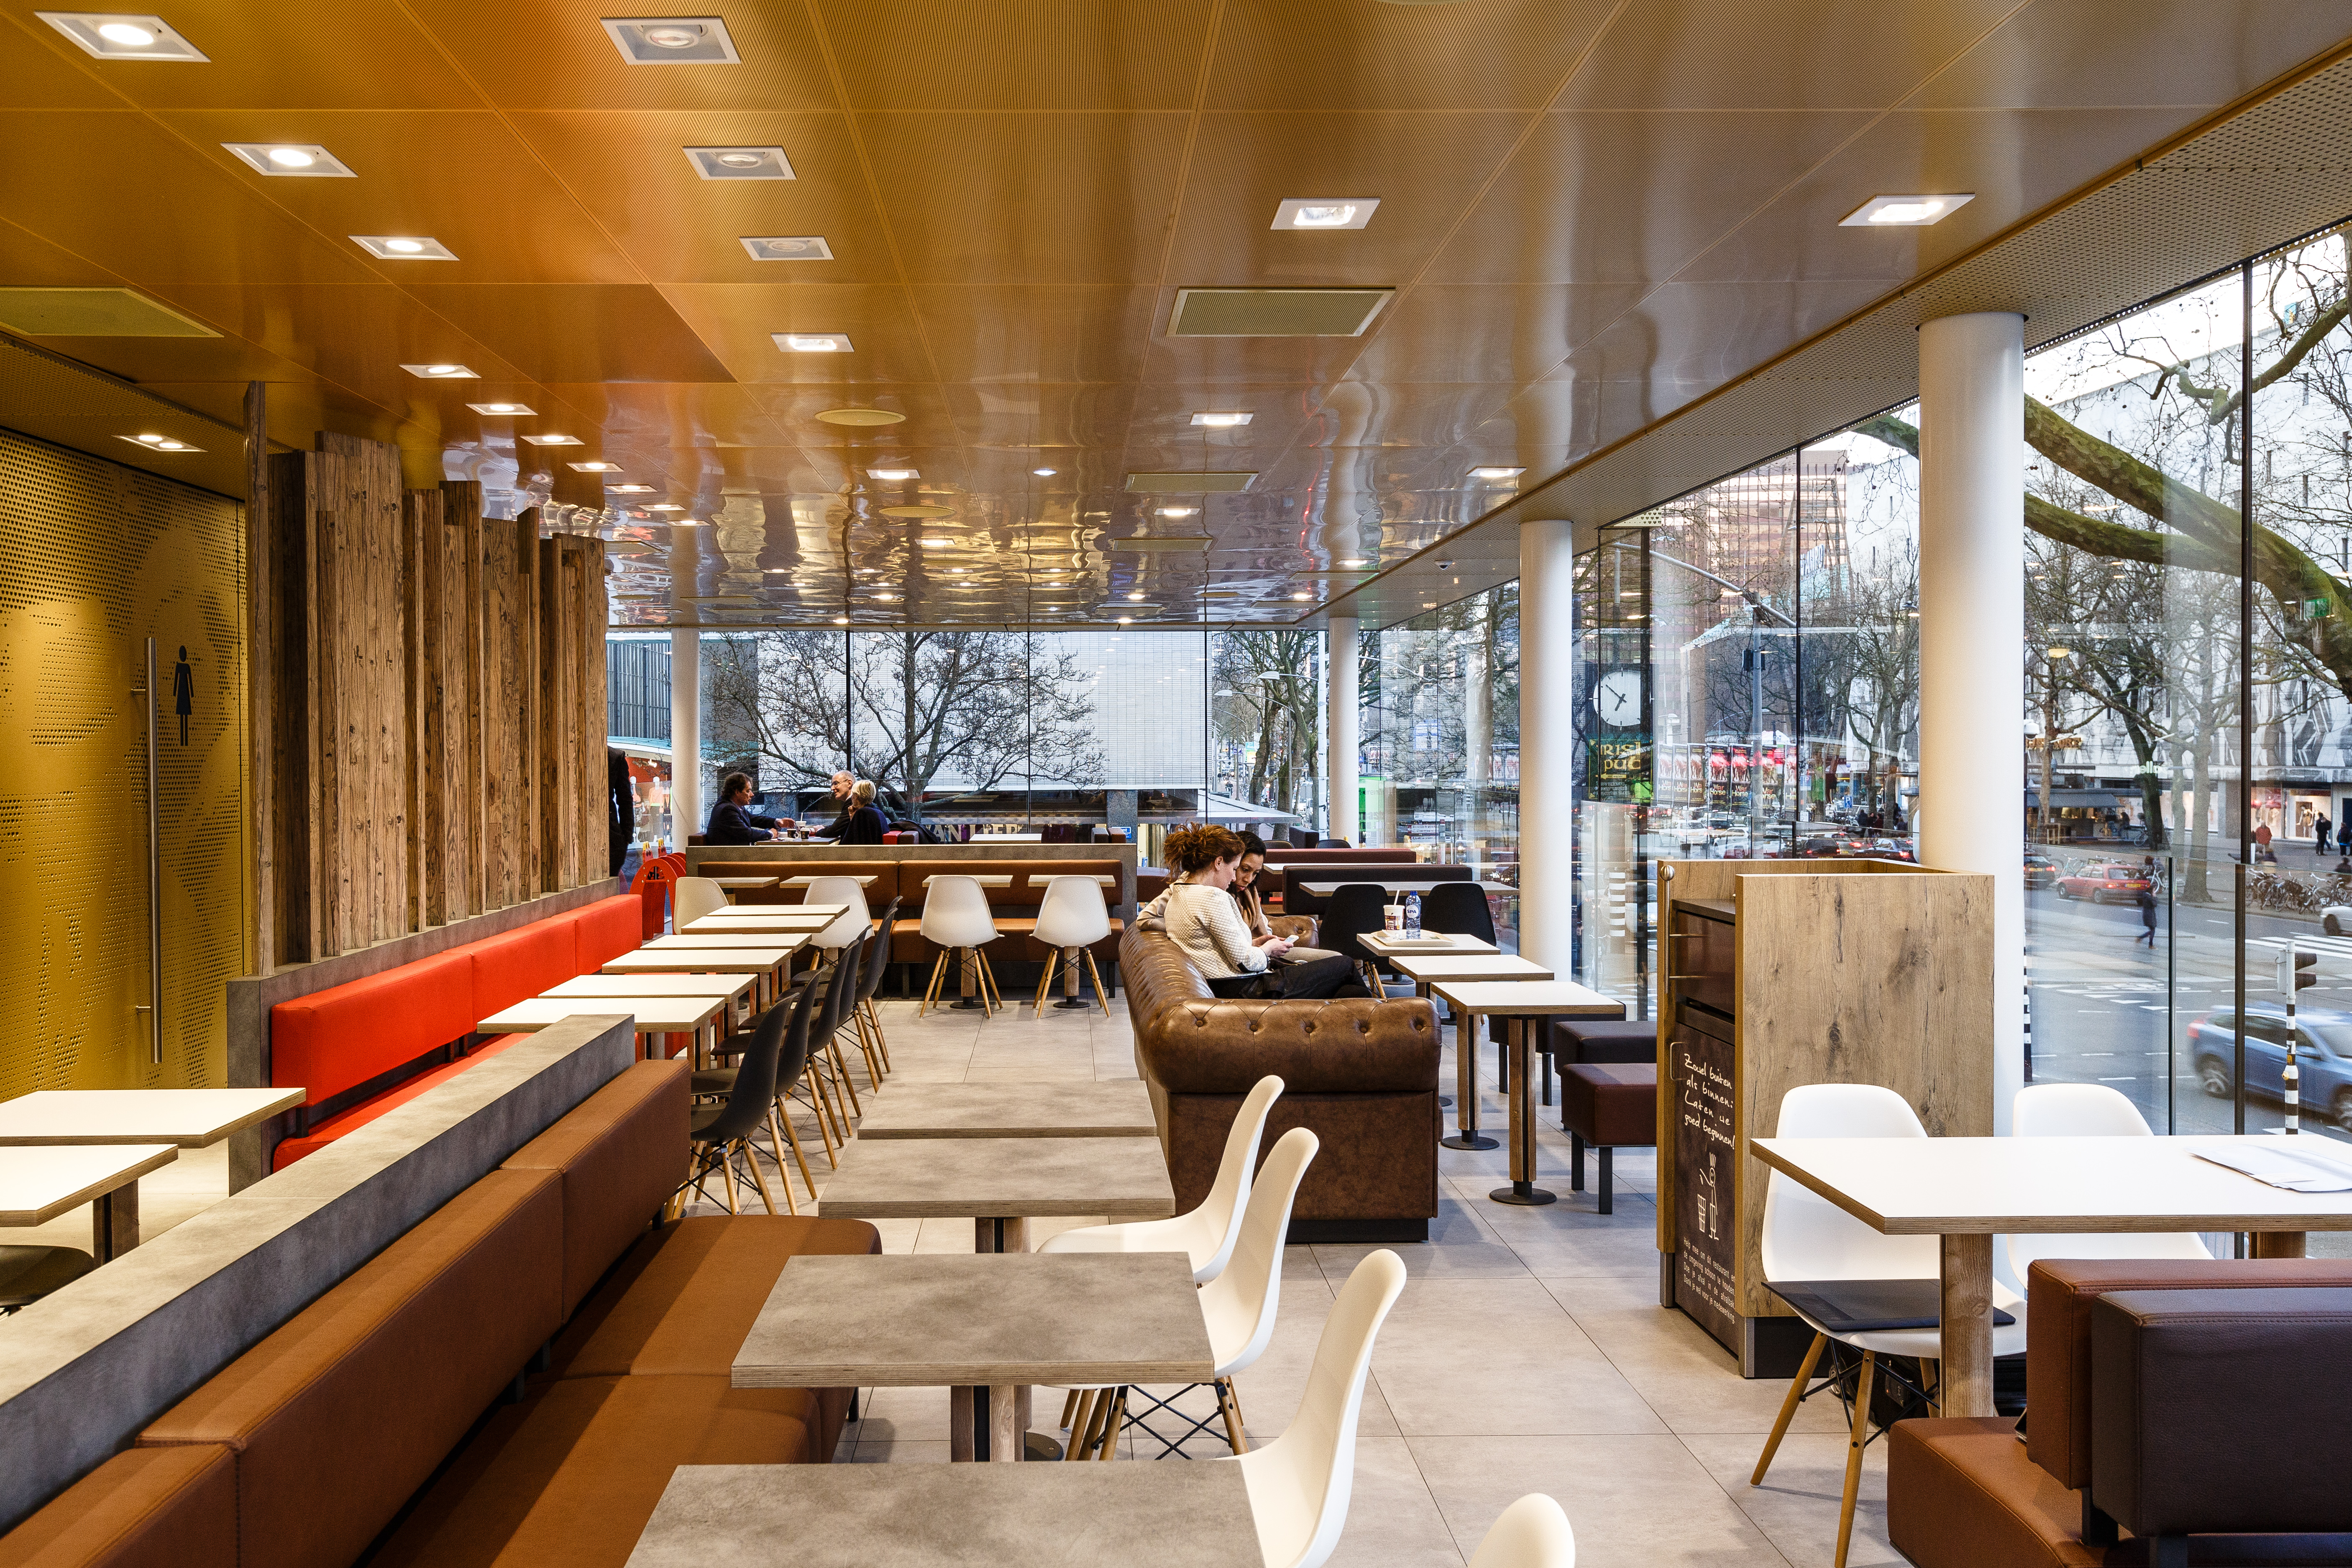 McDonalds Netherlands Interior